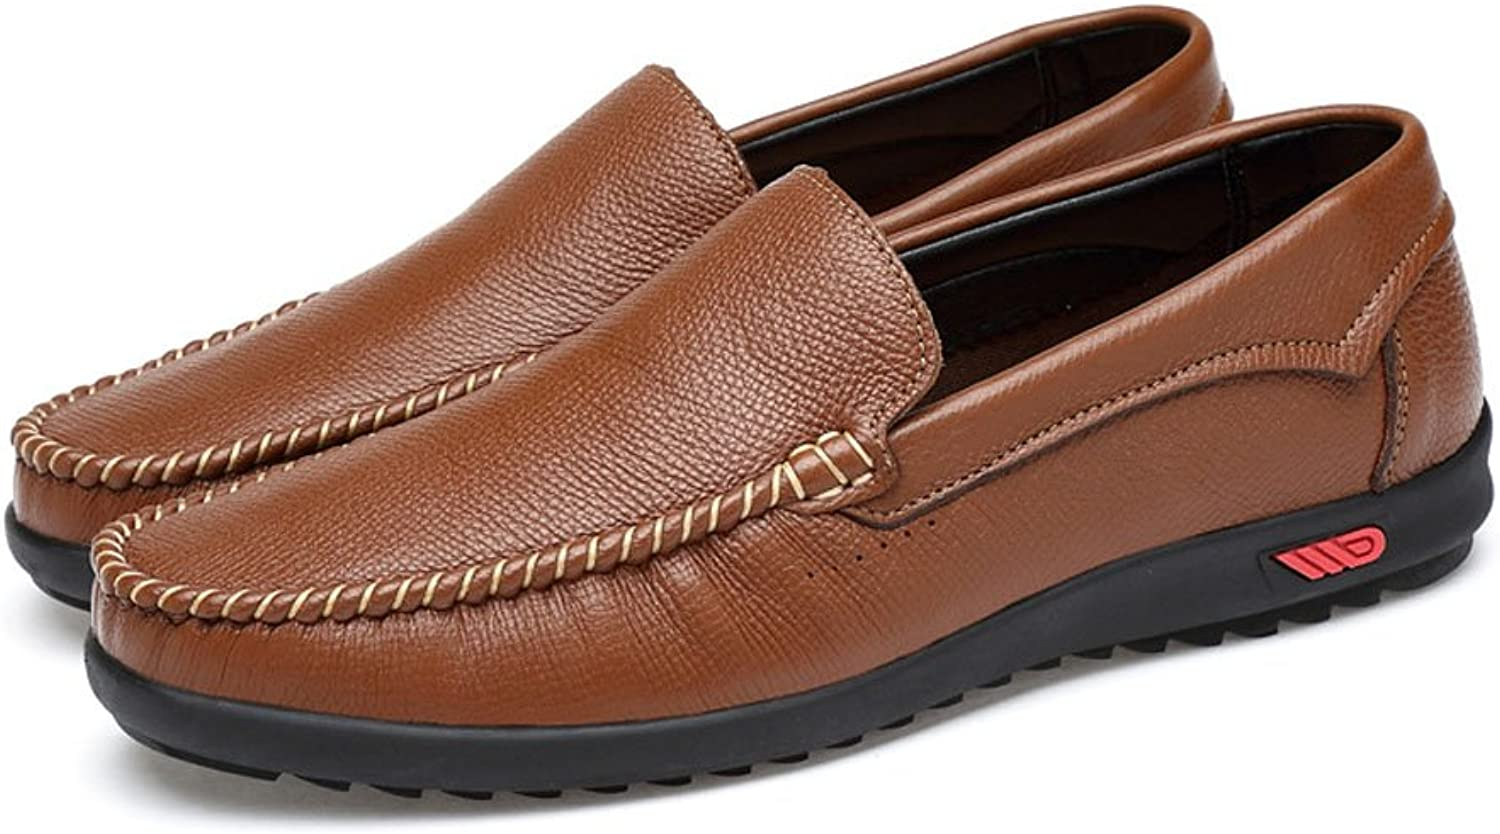 Men's Driving Penny Loafers Bare Vamp Casual Boat Moccasins Soft Rubber Sole